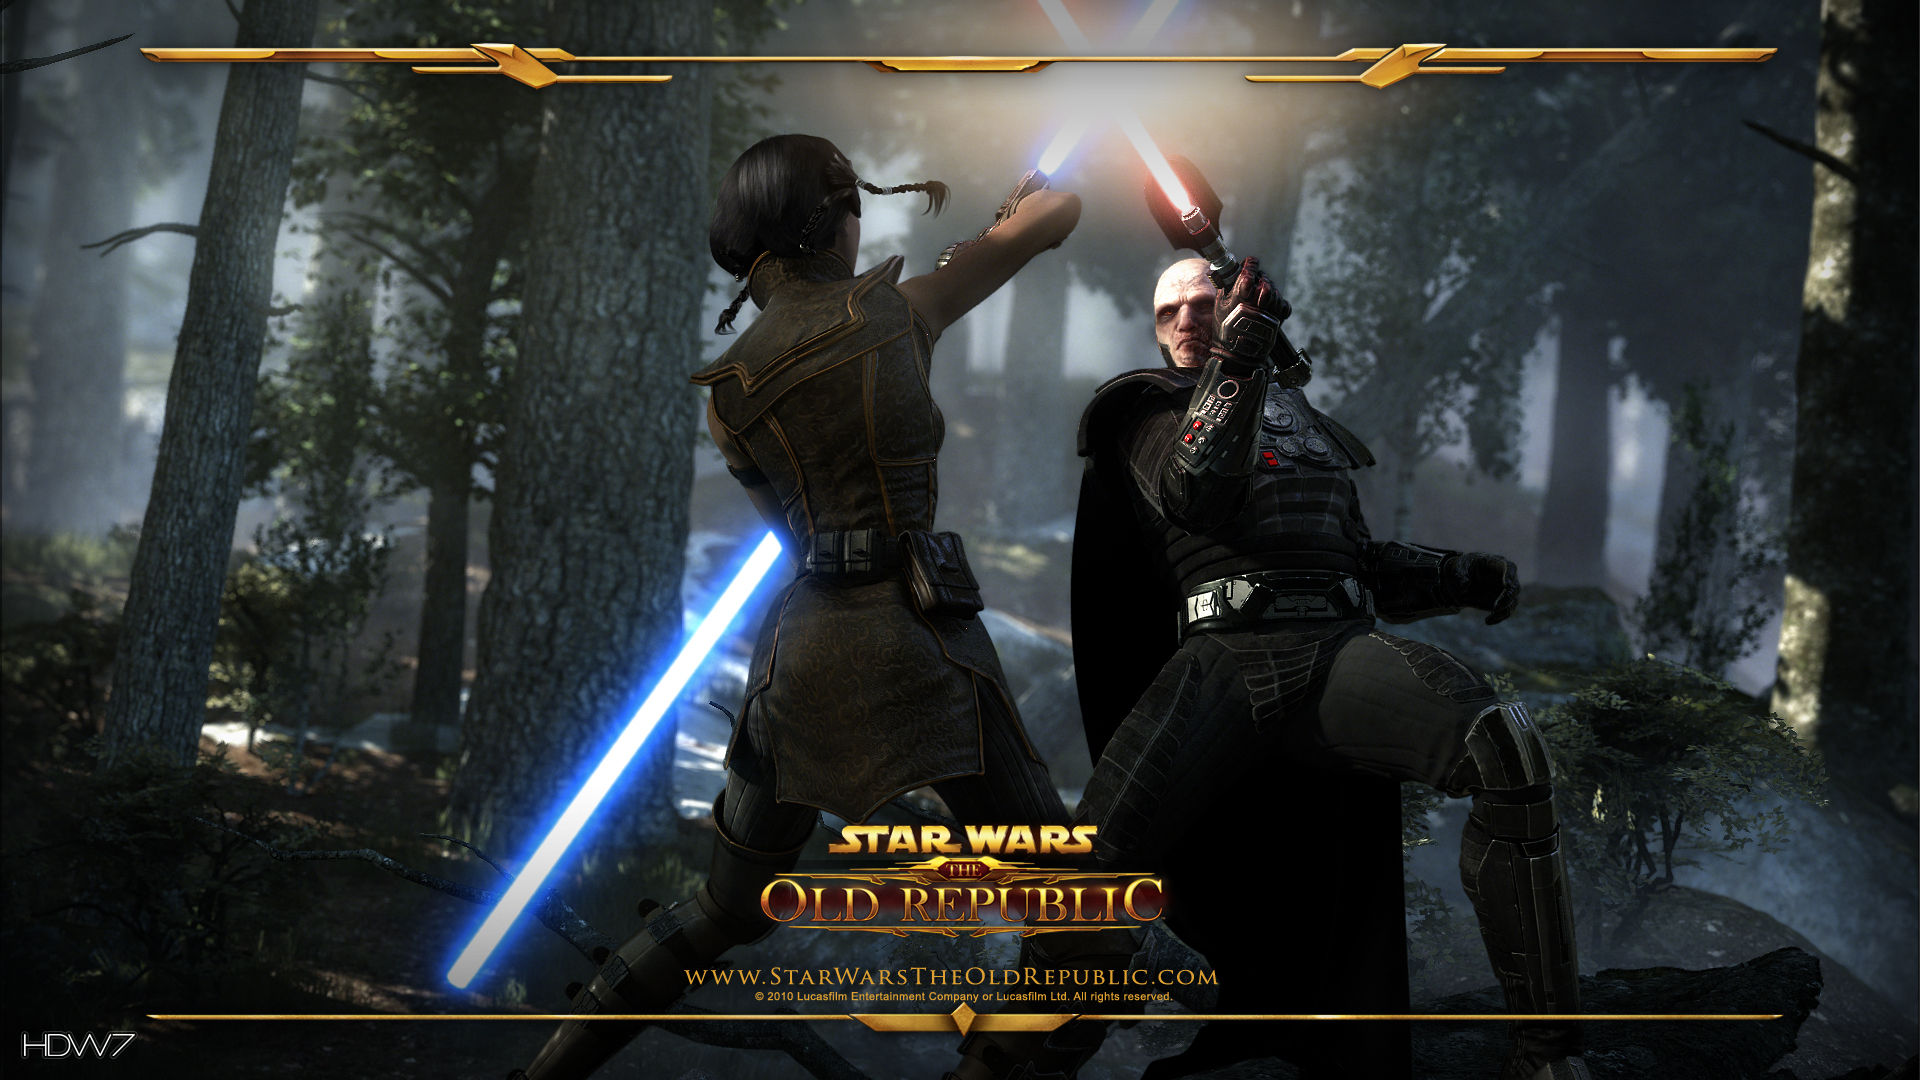 star wars the old republic duel in forest widescreen hd wallpaper